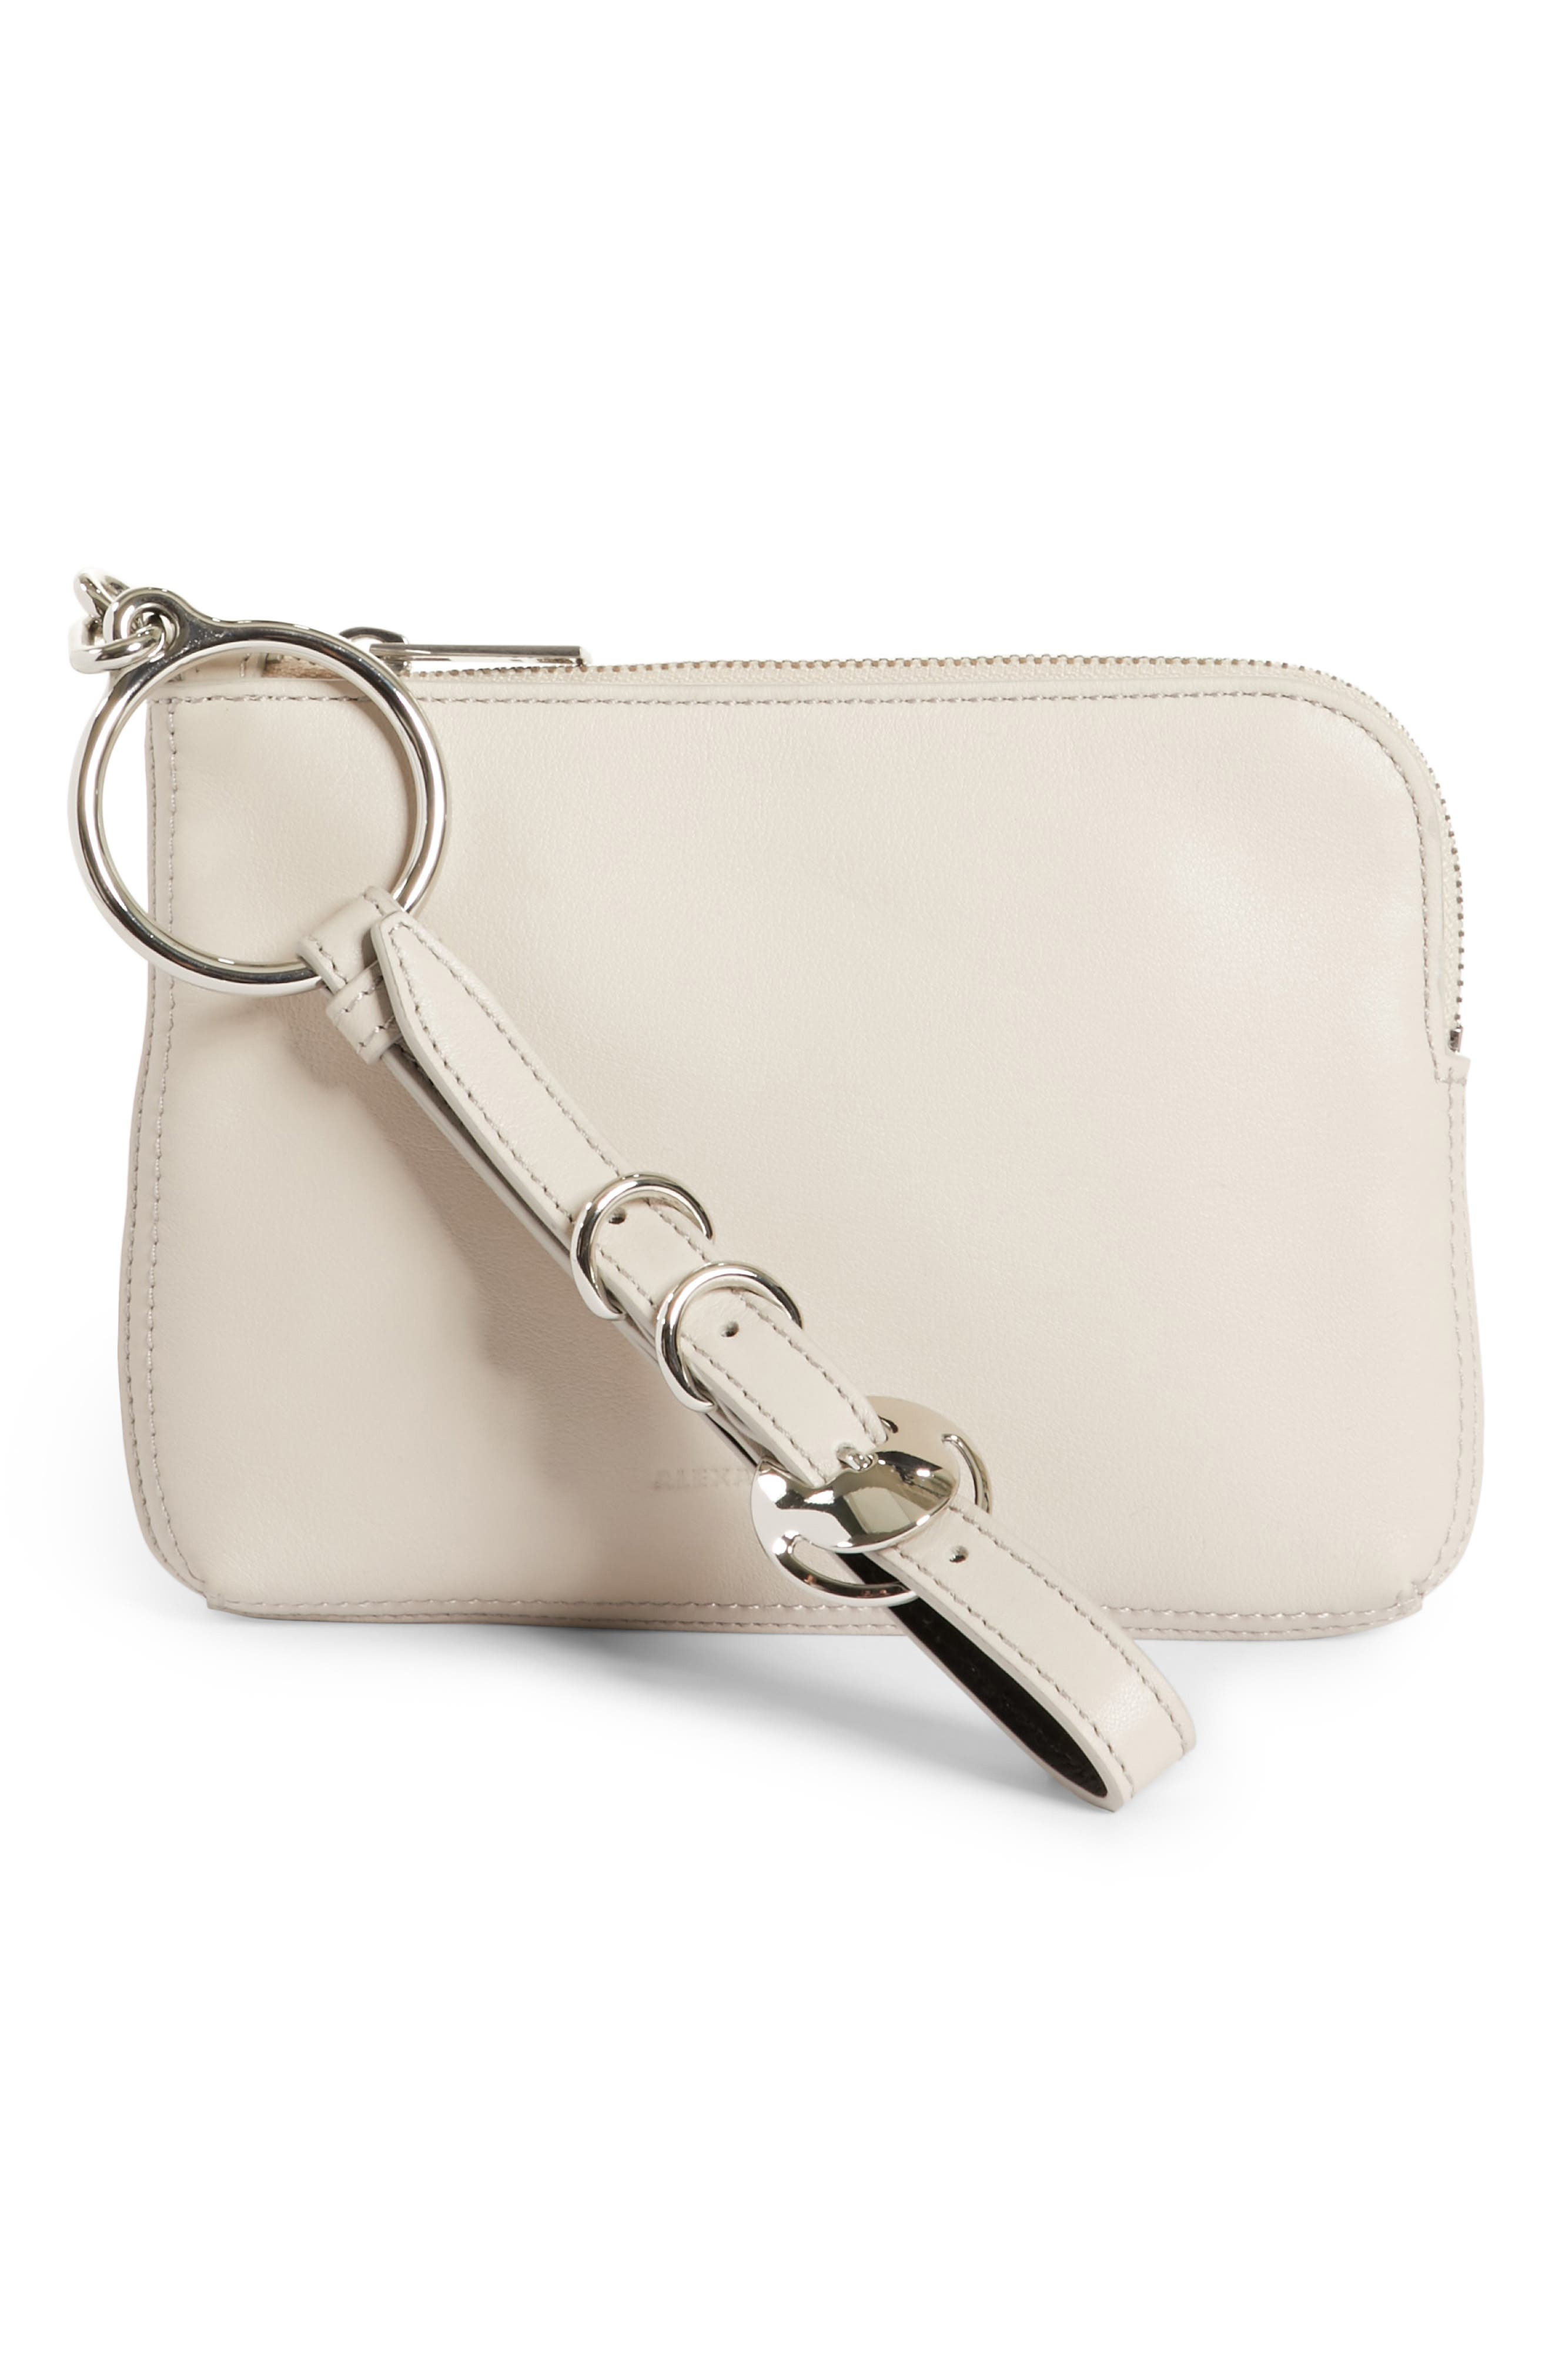 Small Ace Leather Wristlet,                             Main thumbnail 1, color,                             110